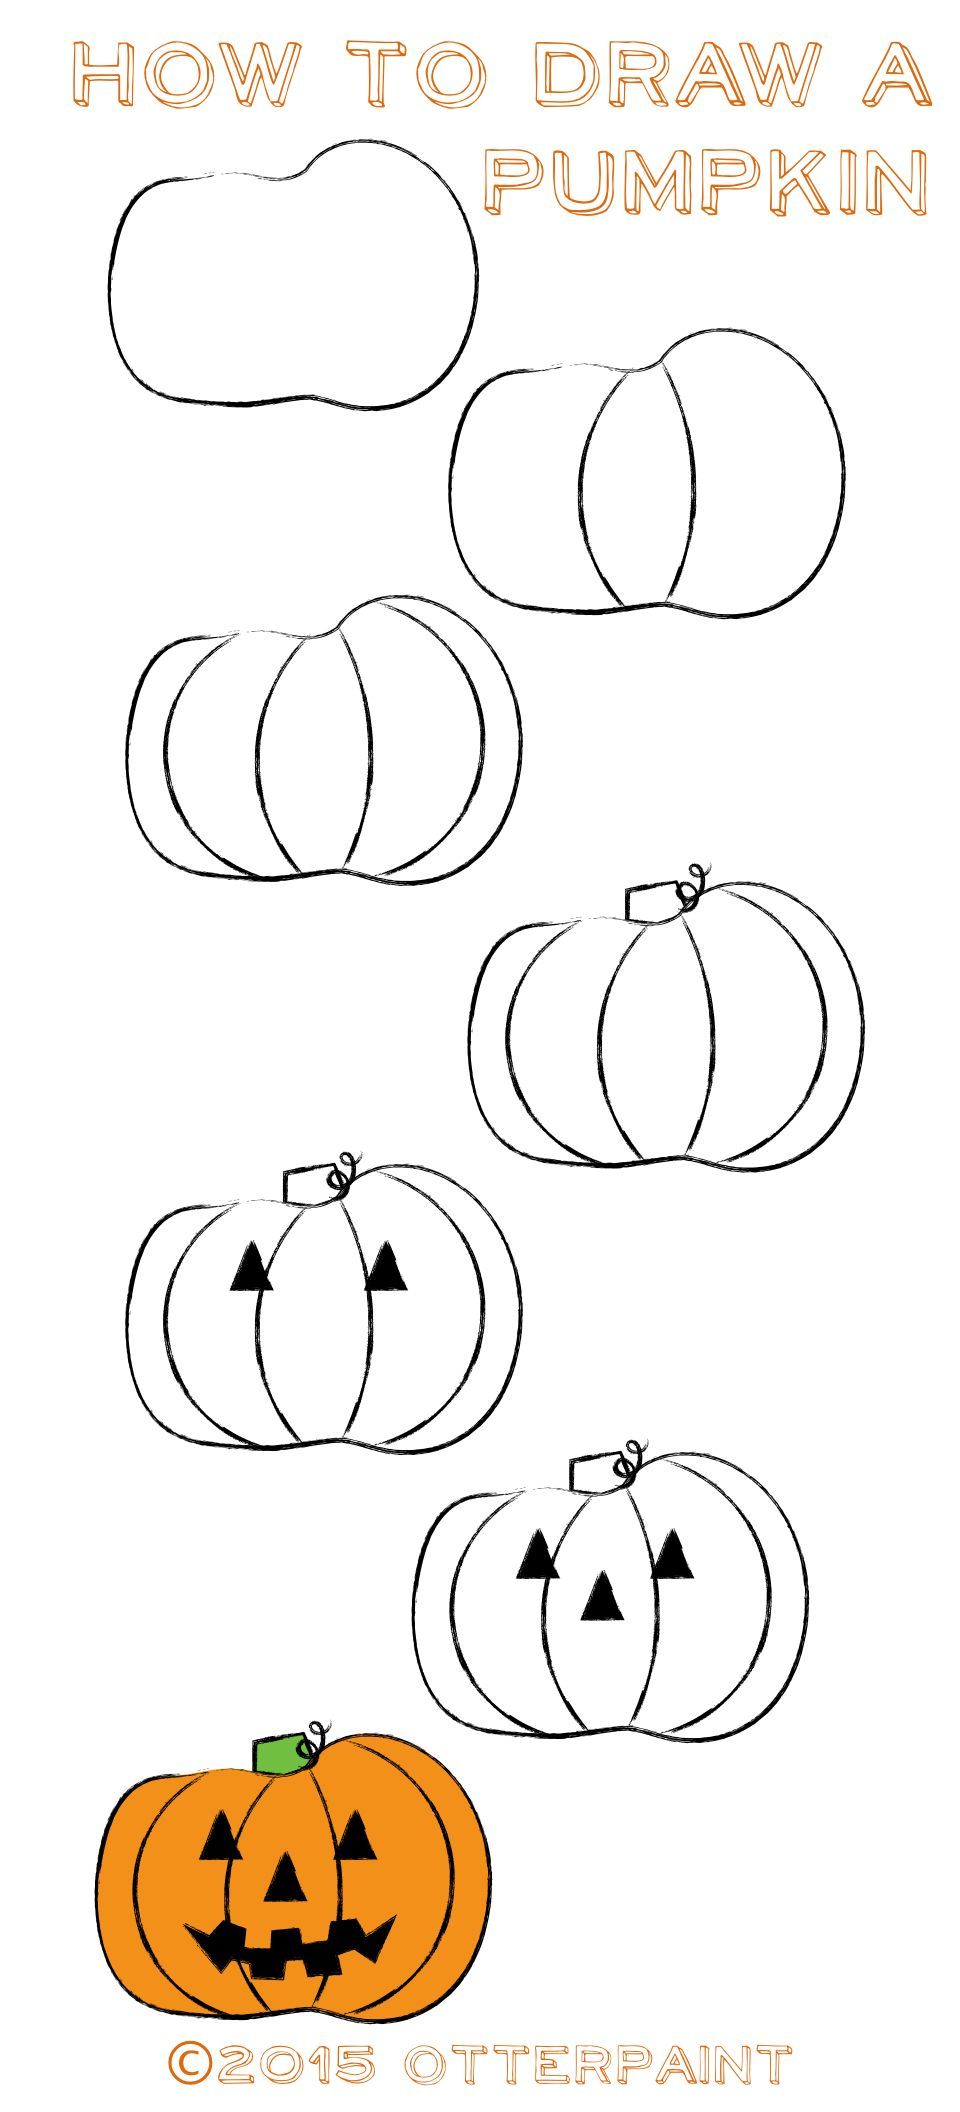 How To Draw Pusheen Cat On Pumpkin With Candy Corn Step By Step